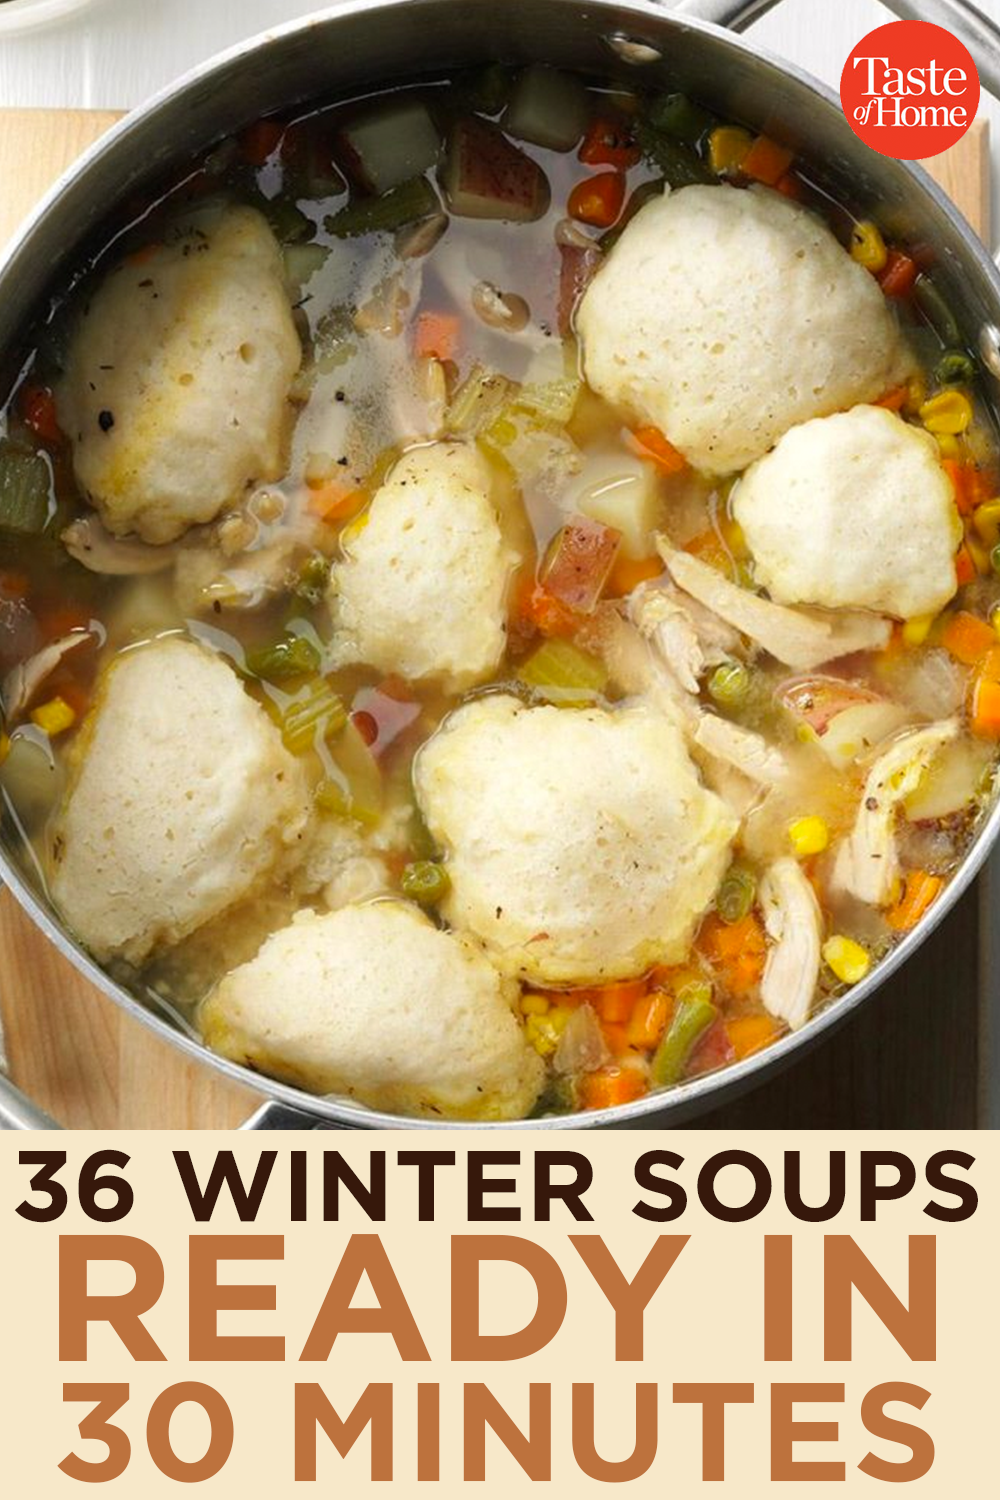 36 Winter Soups That Go from Stove to Table in 30